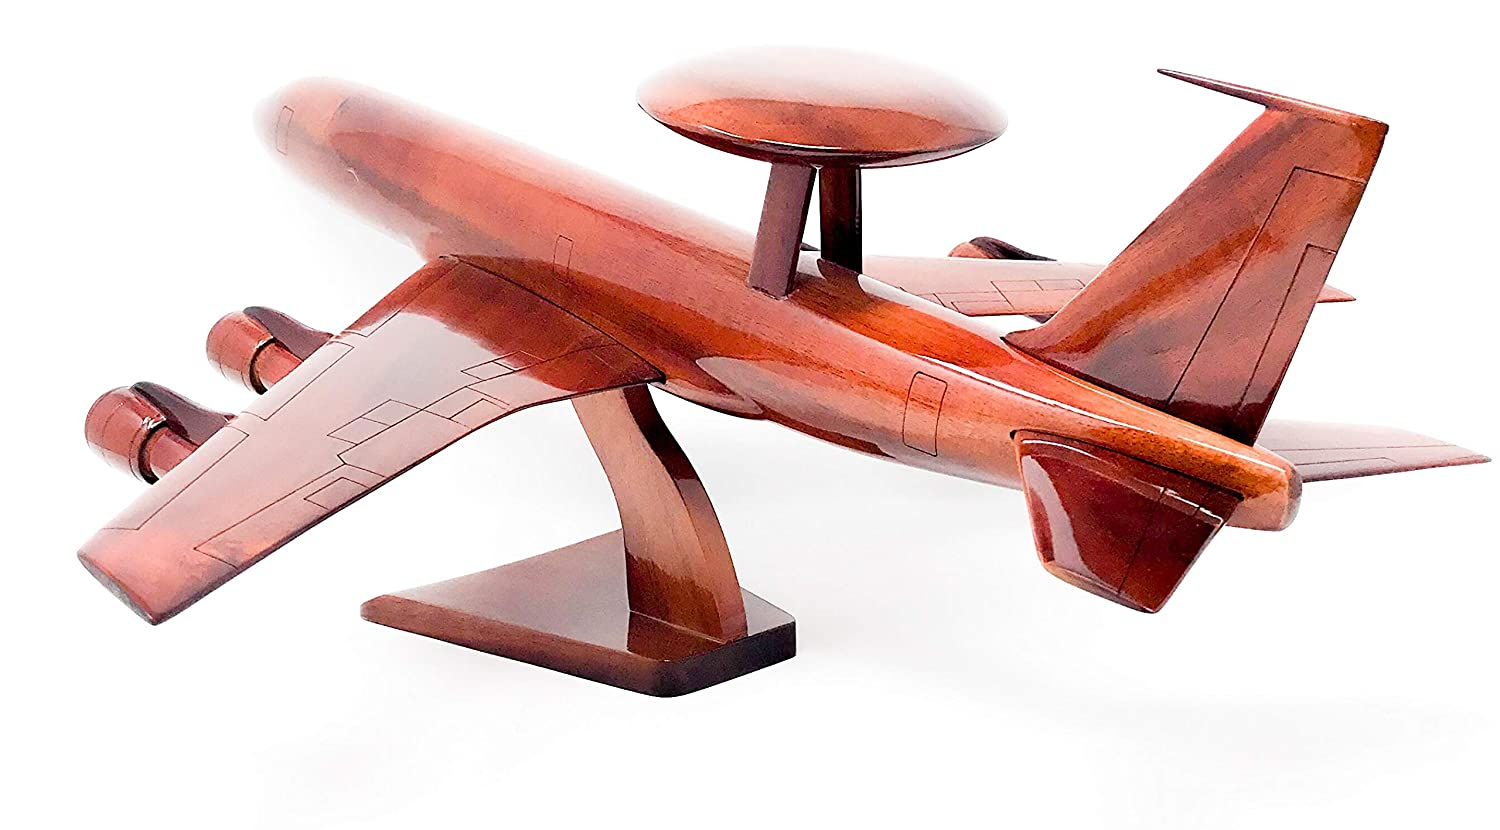 E-3 AWACS Replica Airplane Model Hand Crafted with Real Mahogany Wood